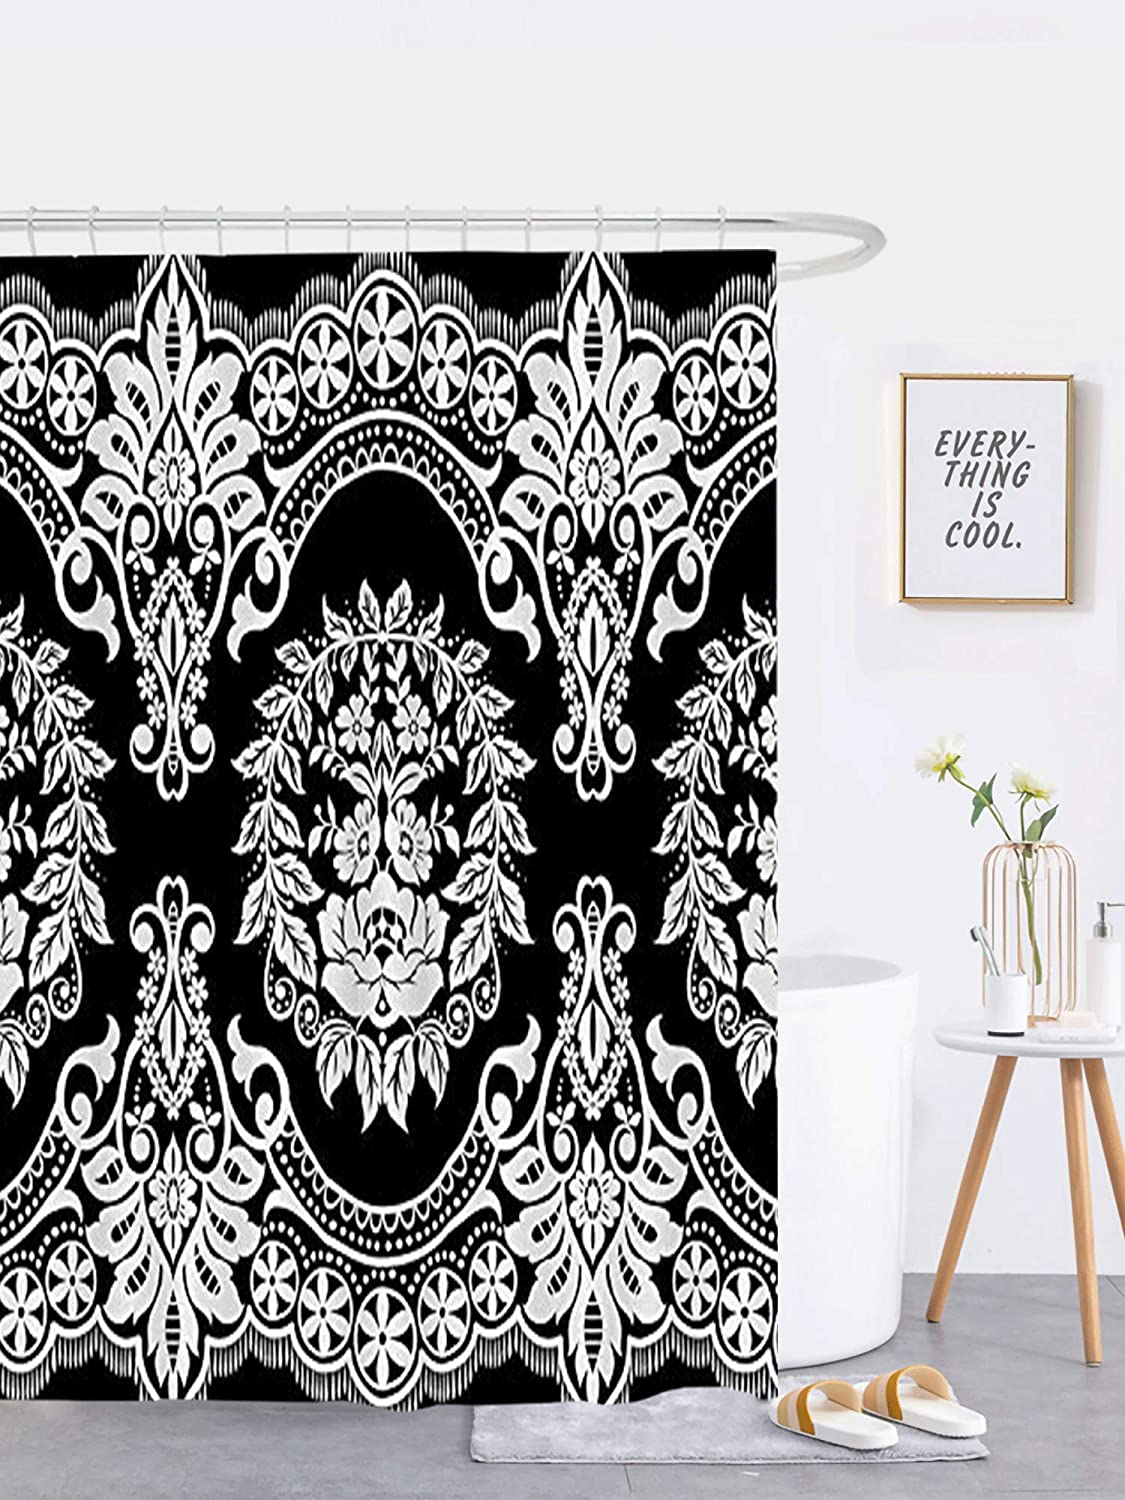 JOOCAR Bathroom Decor Shower Curtain Lace Pattern Flower Vintage Background Black and White Damask Home Curtain Sets with Hooks Polyester Fabric Great Gift